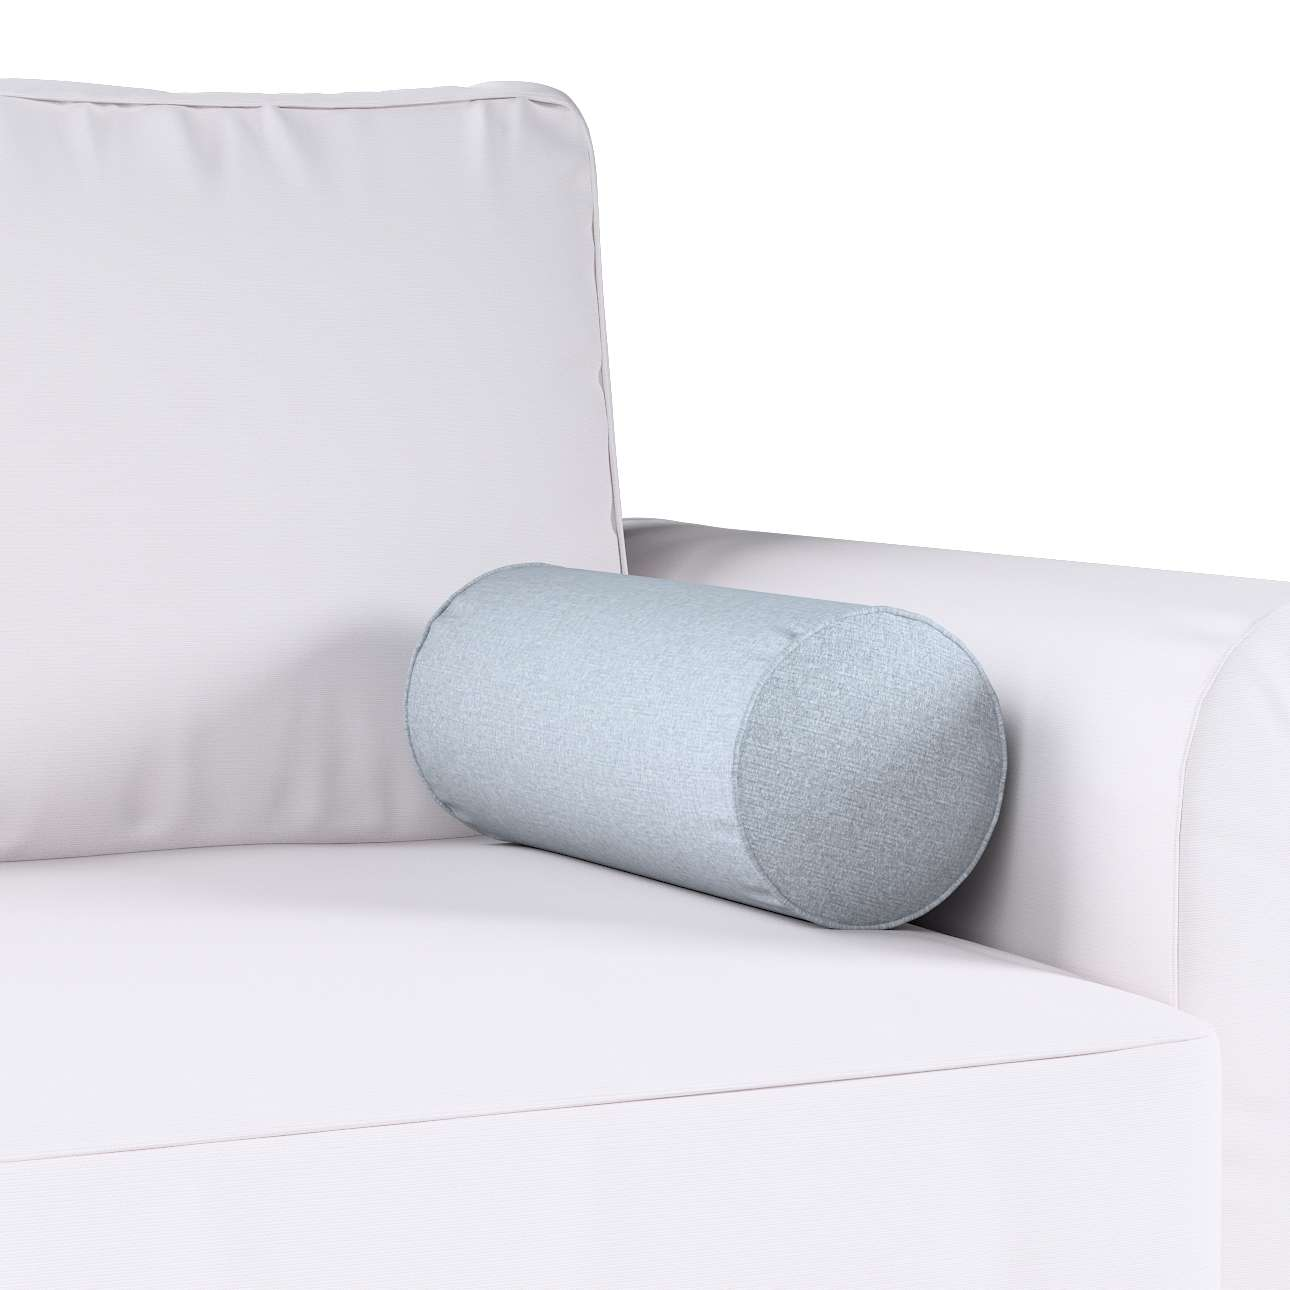 Bolster cushion in collection Amsterdam, fabric: 704-46